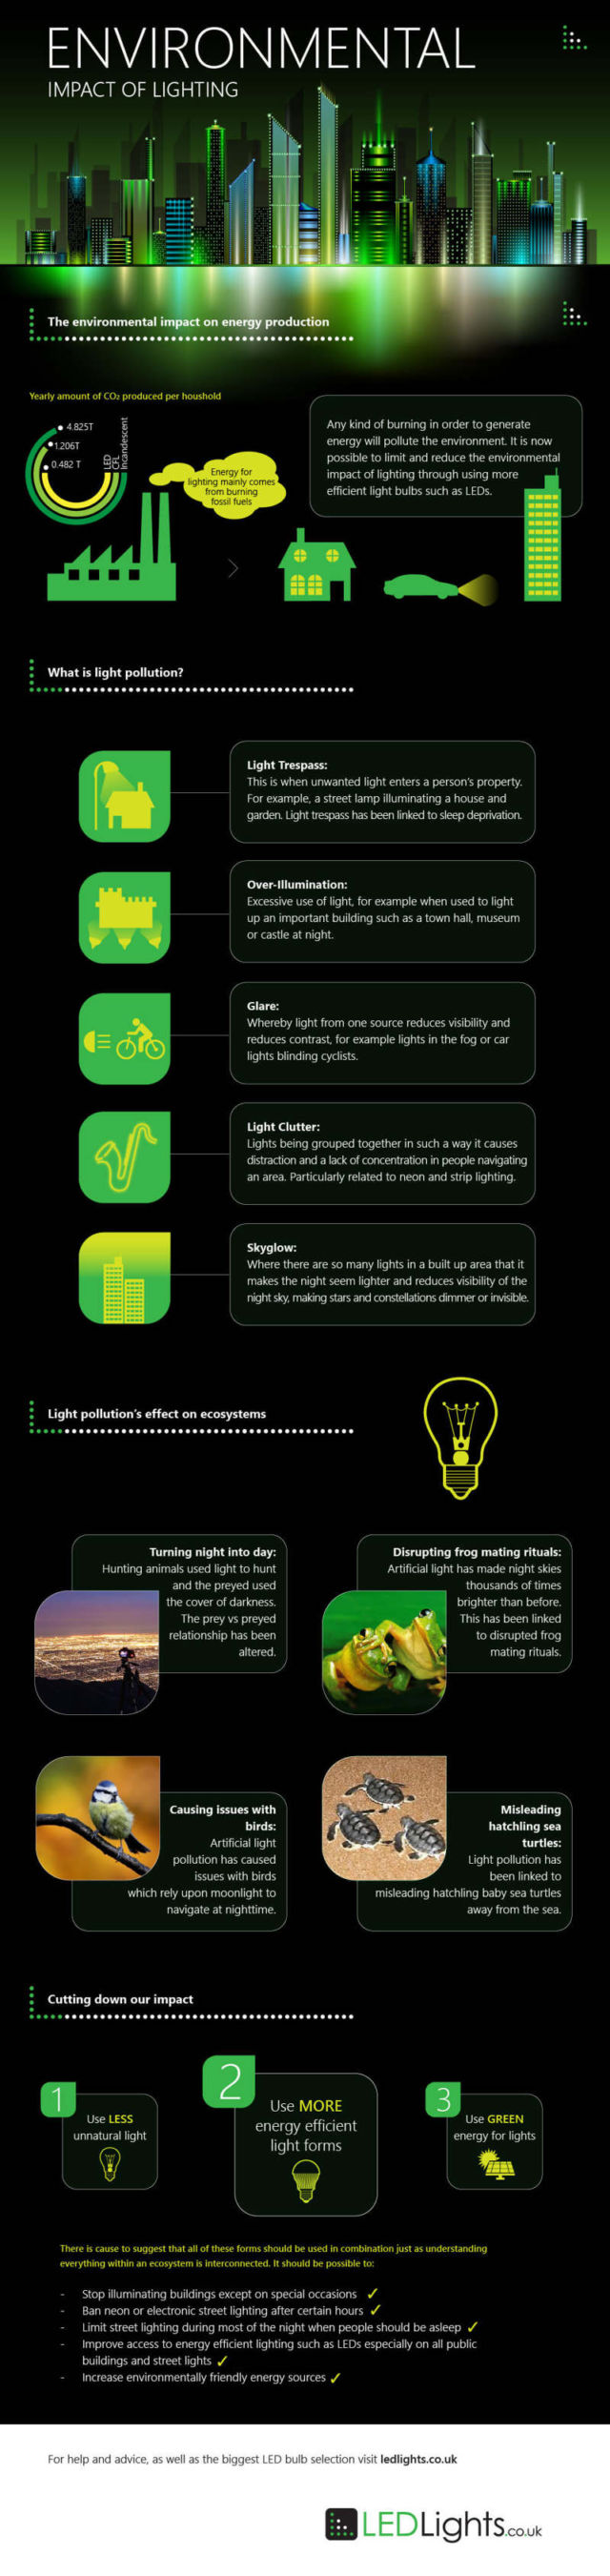 Environmental Impact of Lighting - infographic